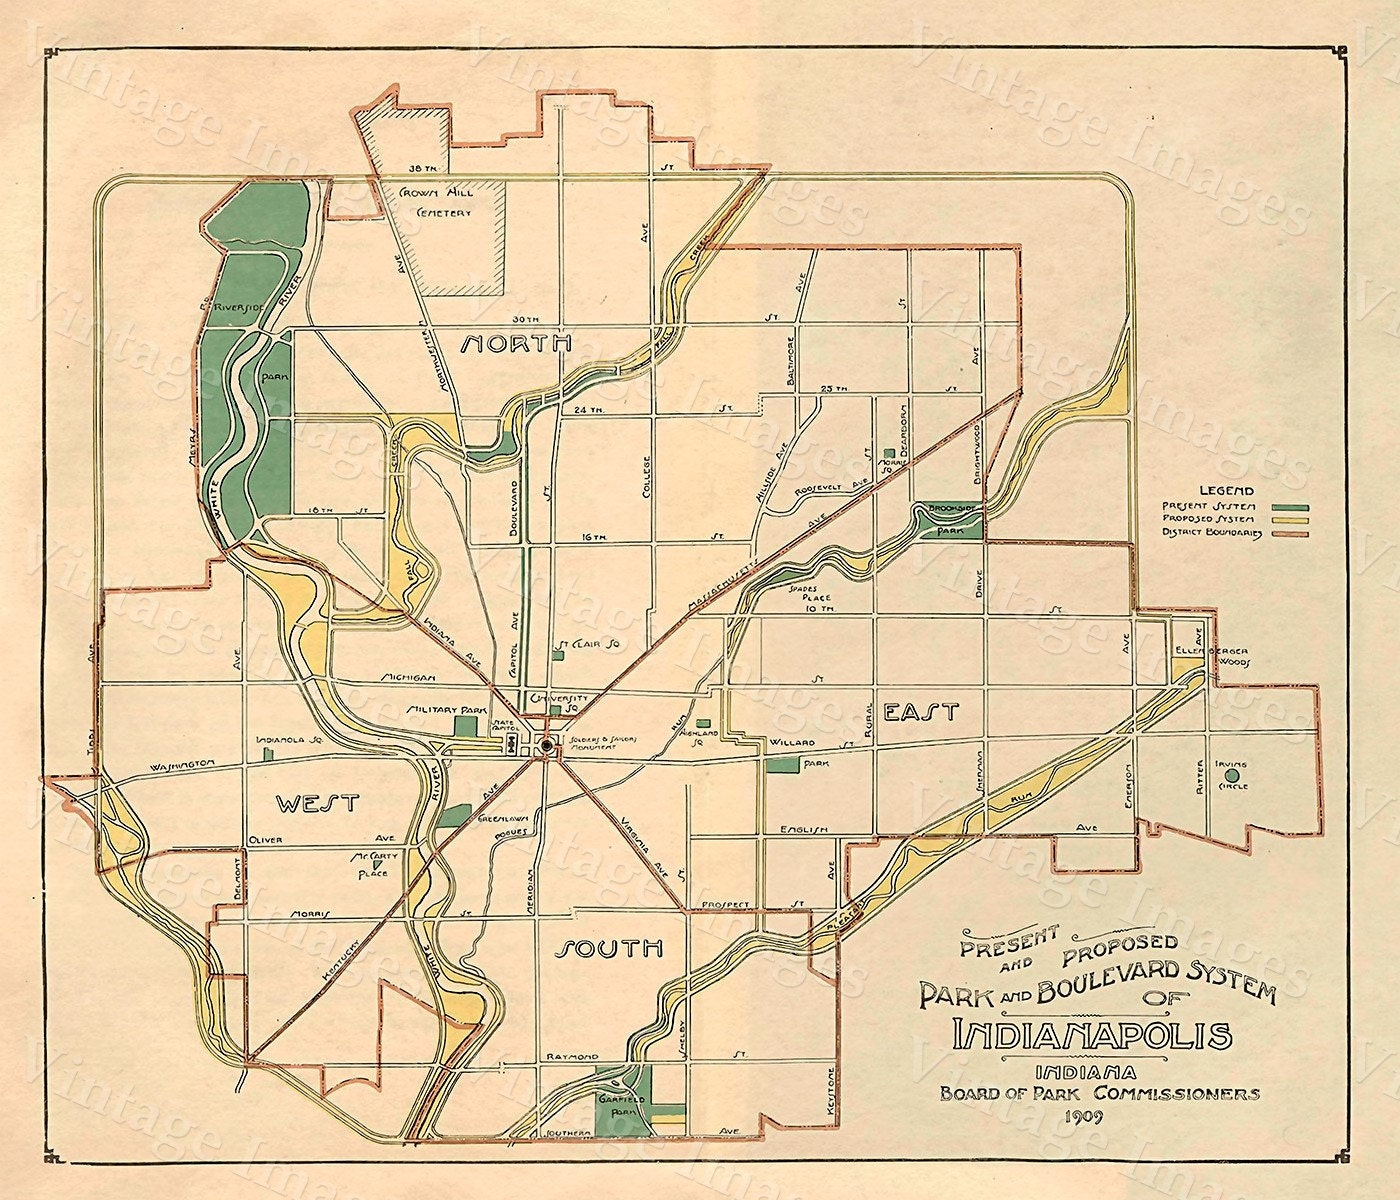 Old INDIANAPOLIS Map 1908 Indianapolis Print,Wall Decor Style ... on indiana map with latitude and longitude, indiana by county, indiana climate graph, indiana county map ohio, wyoming map showing counties, indiana county map online, indiana map with marion, indiana county map printable, indiana shipshewana map shopping, indiana territory $1 800 map, indiana underground coal mine maps, louisville map ky counties, indianapolis indiana counties, indiana road map, indiana counties by number, indiana counties names, indiana county population growth, map showing indiana counties, indianapolis area map counties, indiana map townships,